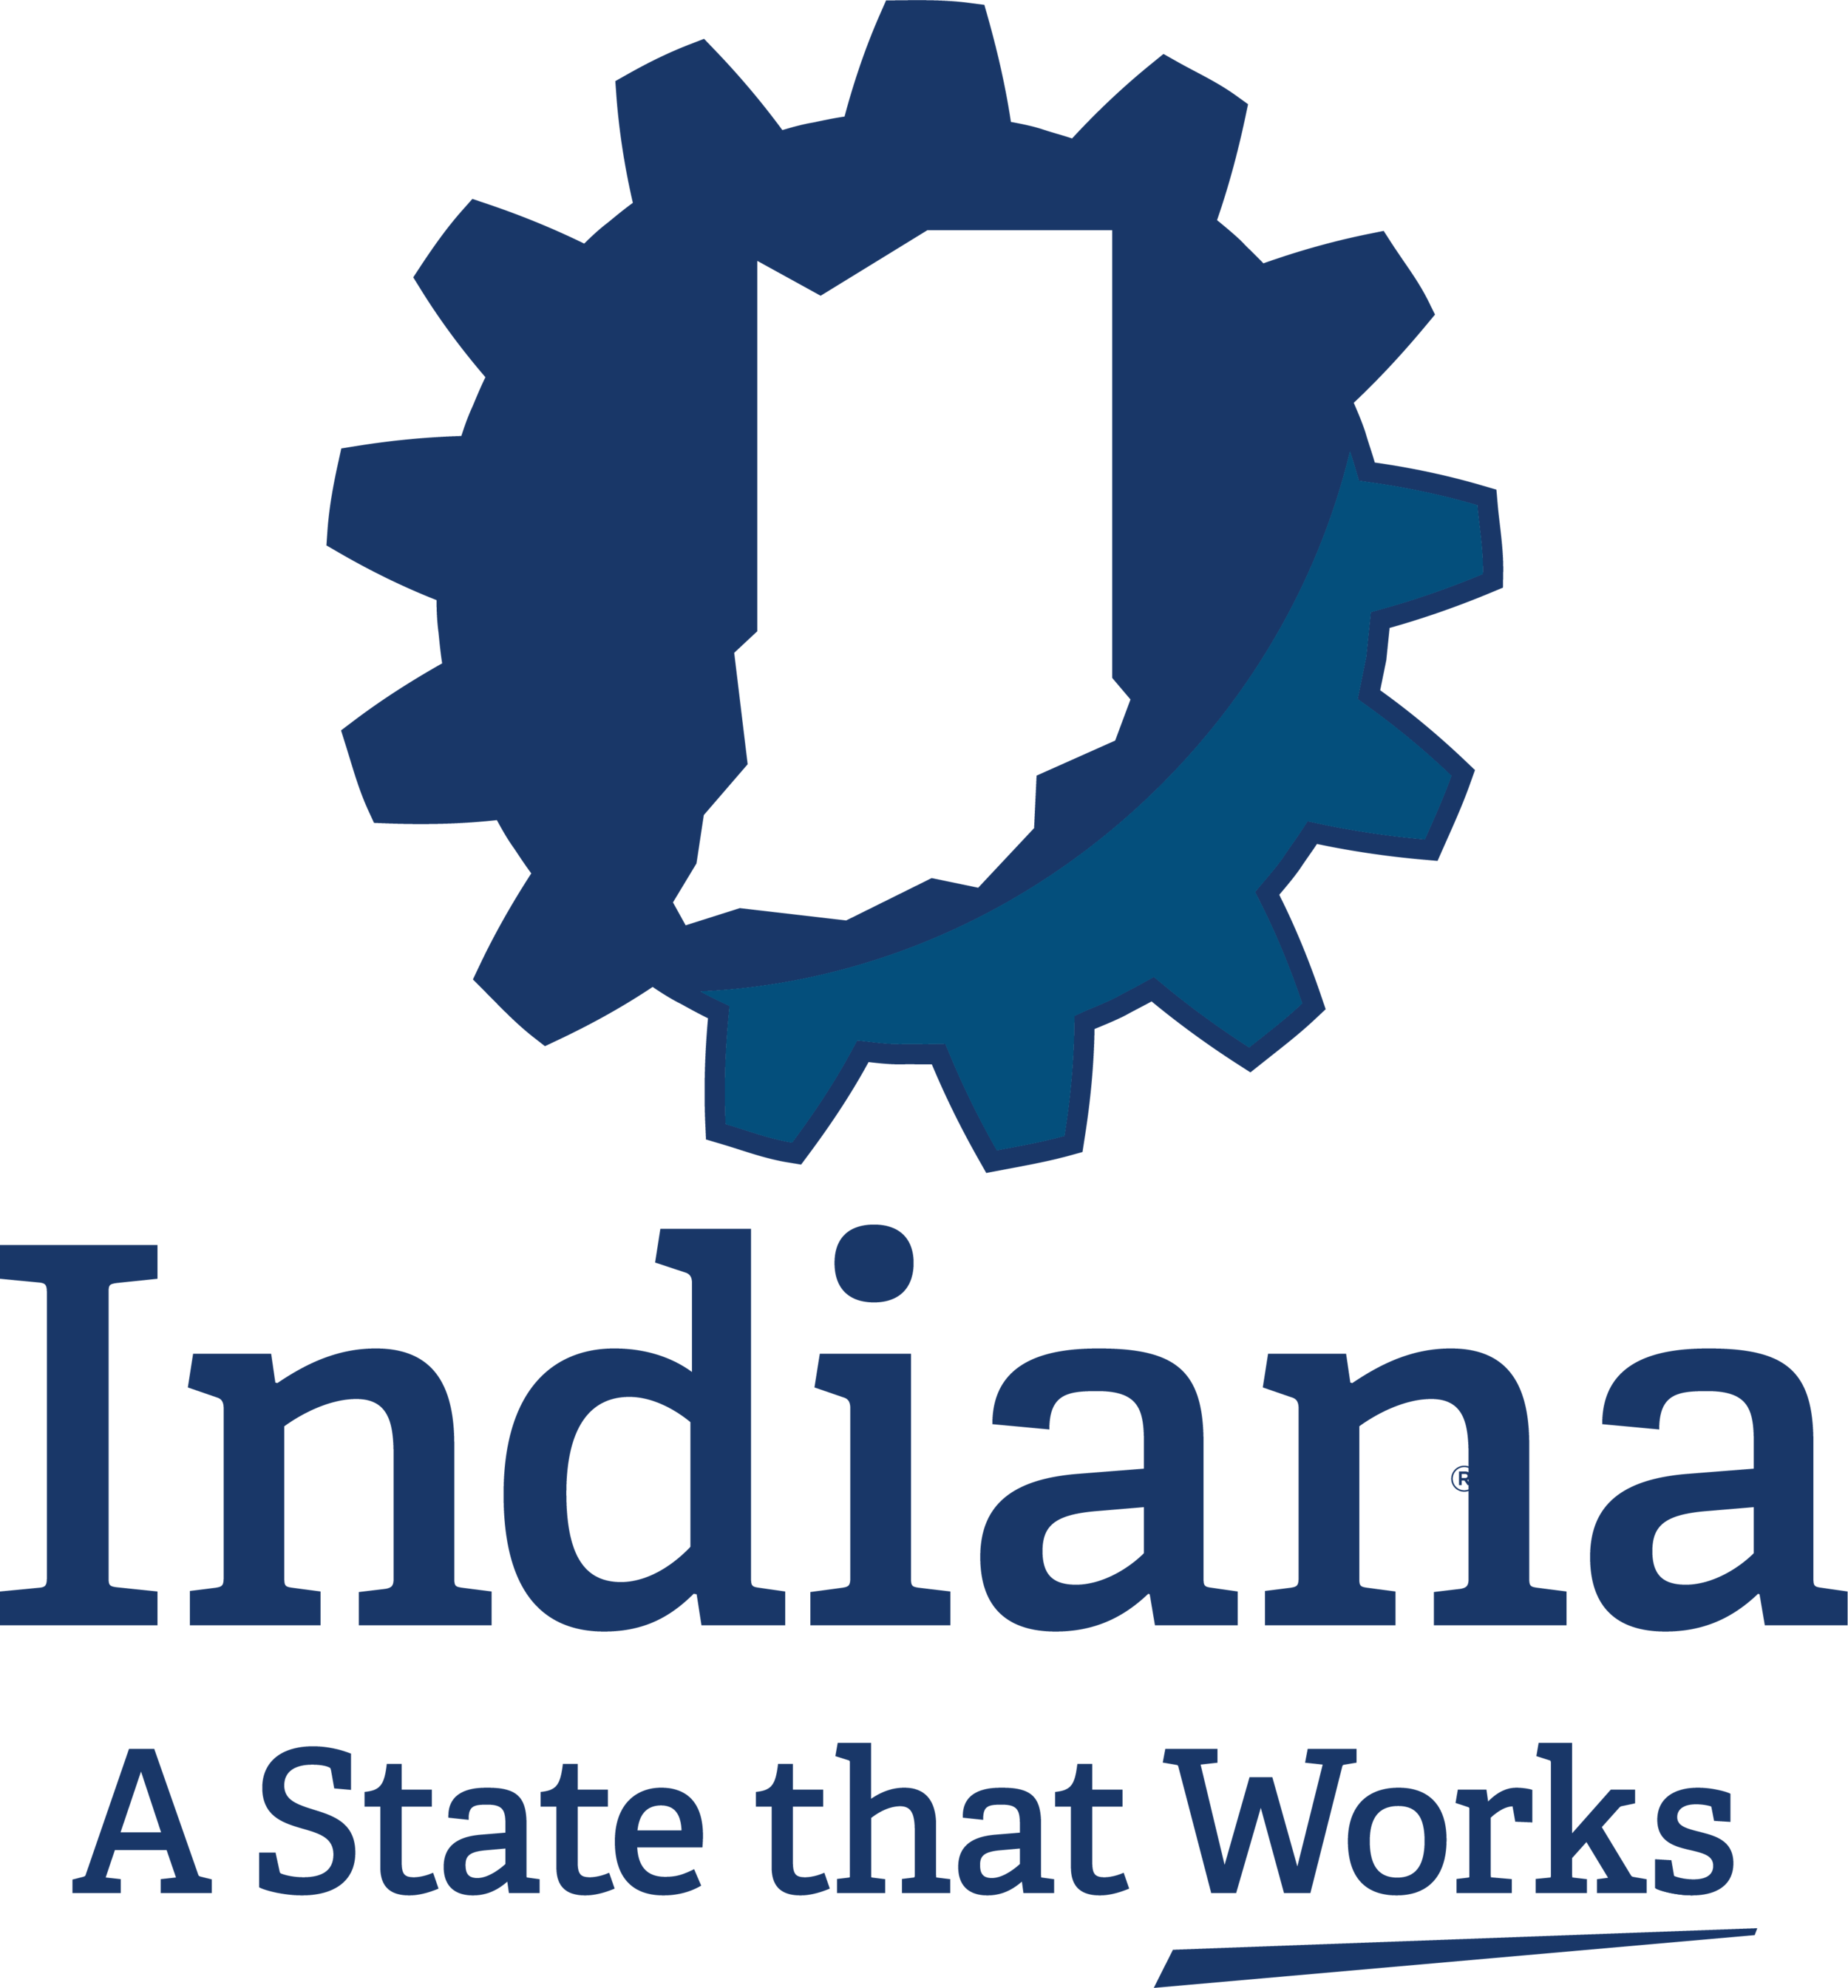 Indiana State Works-Vertical-Blue.png